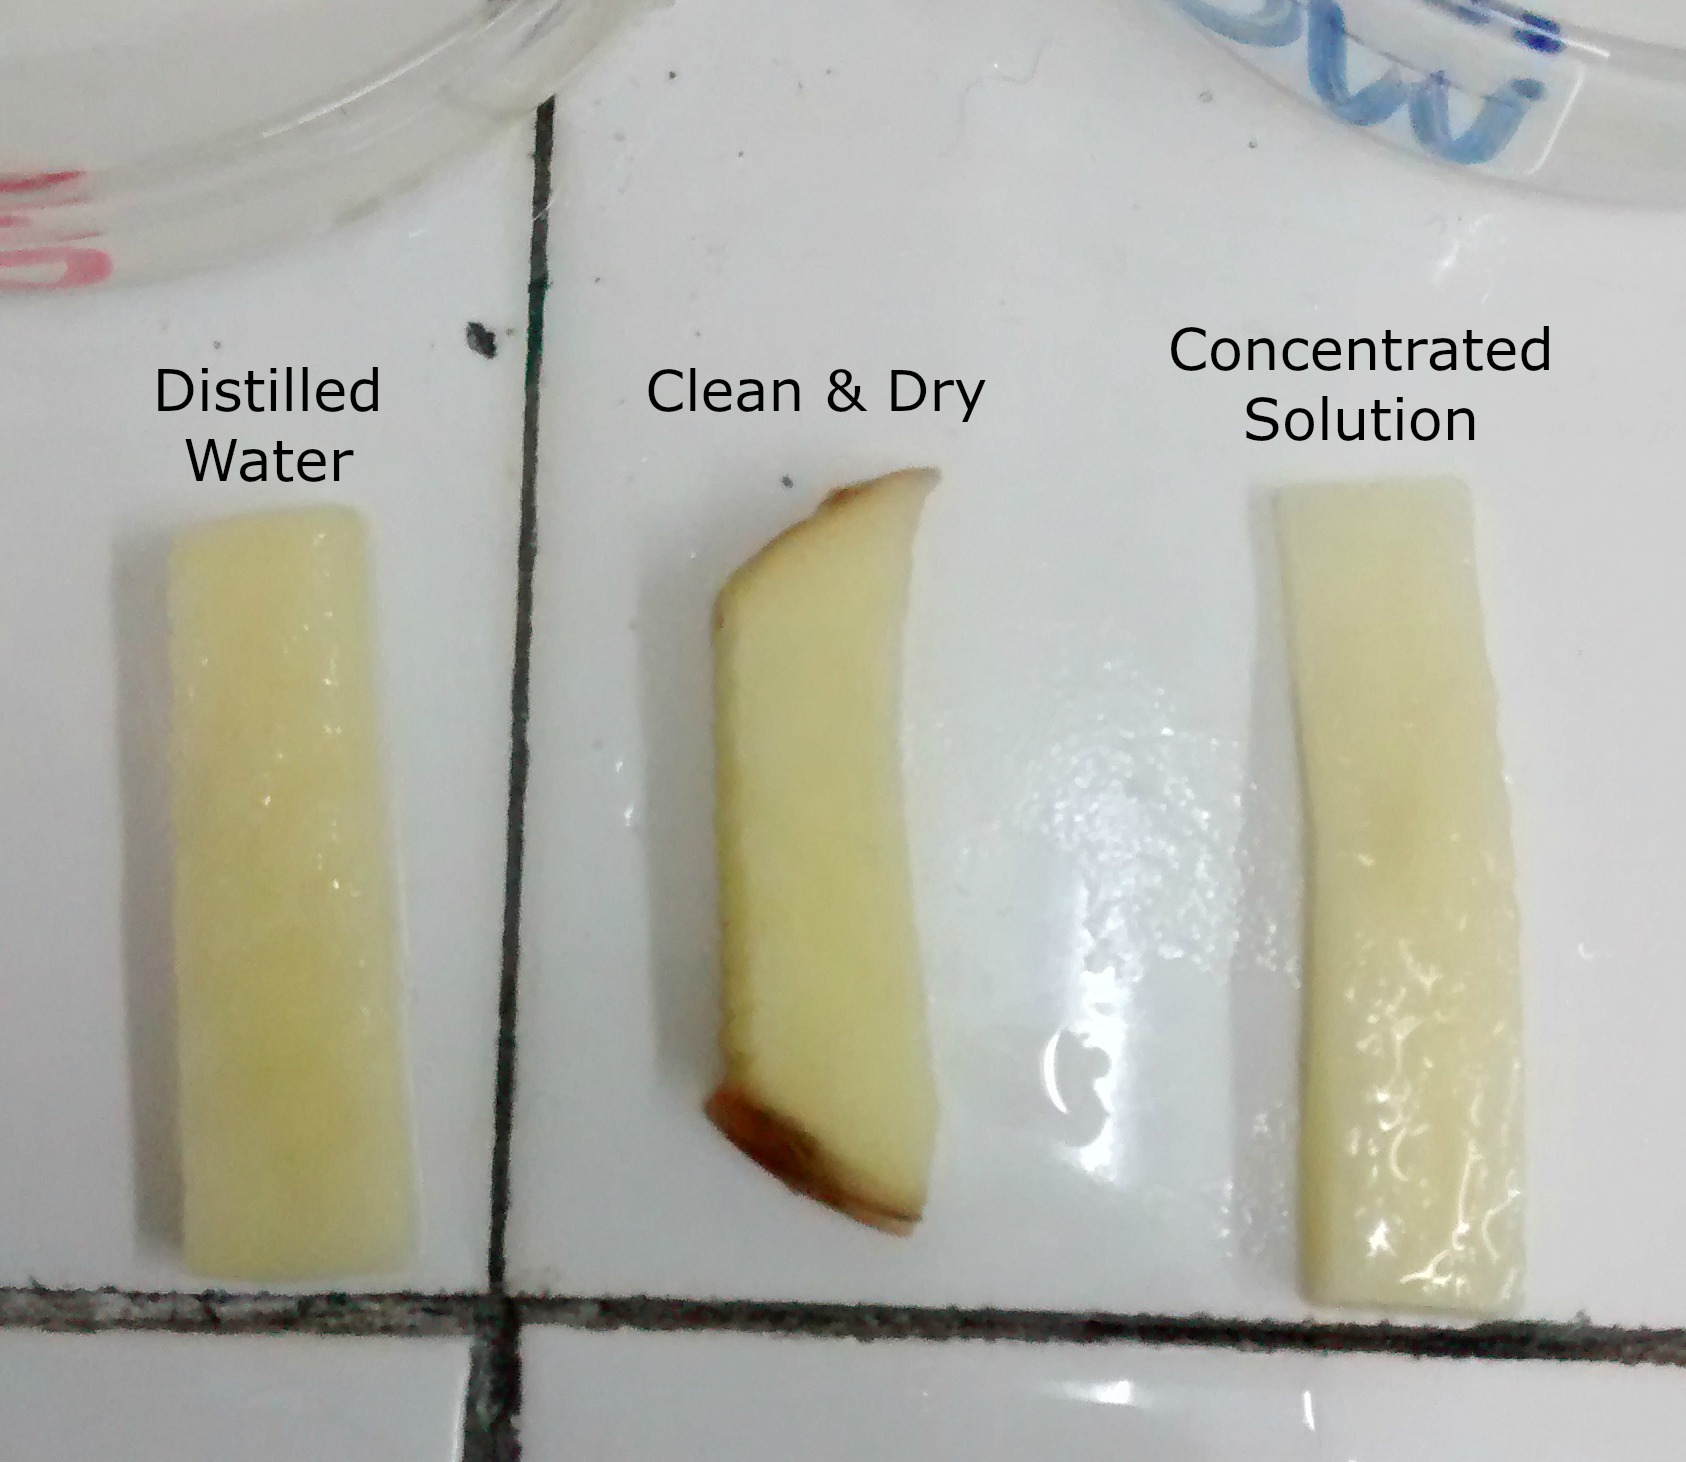 potatoe lab Get tremendous help with potato cells lab report we have highly qualified lab report writers who will help with your osmosis lab report accordingly no matter how urgent your inquiry is, you will receive the best guidance and support from our professionals.